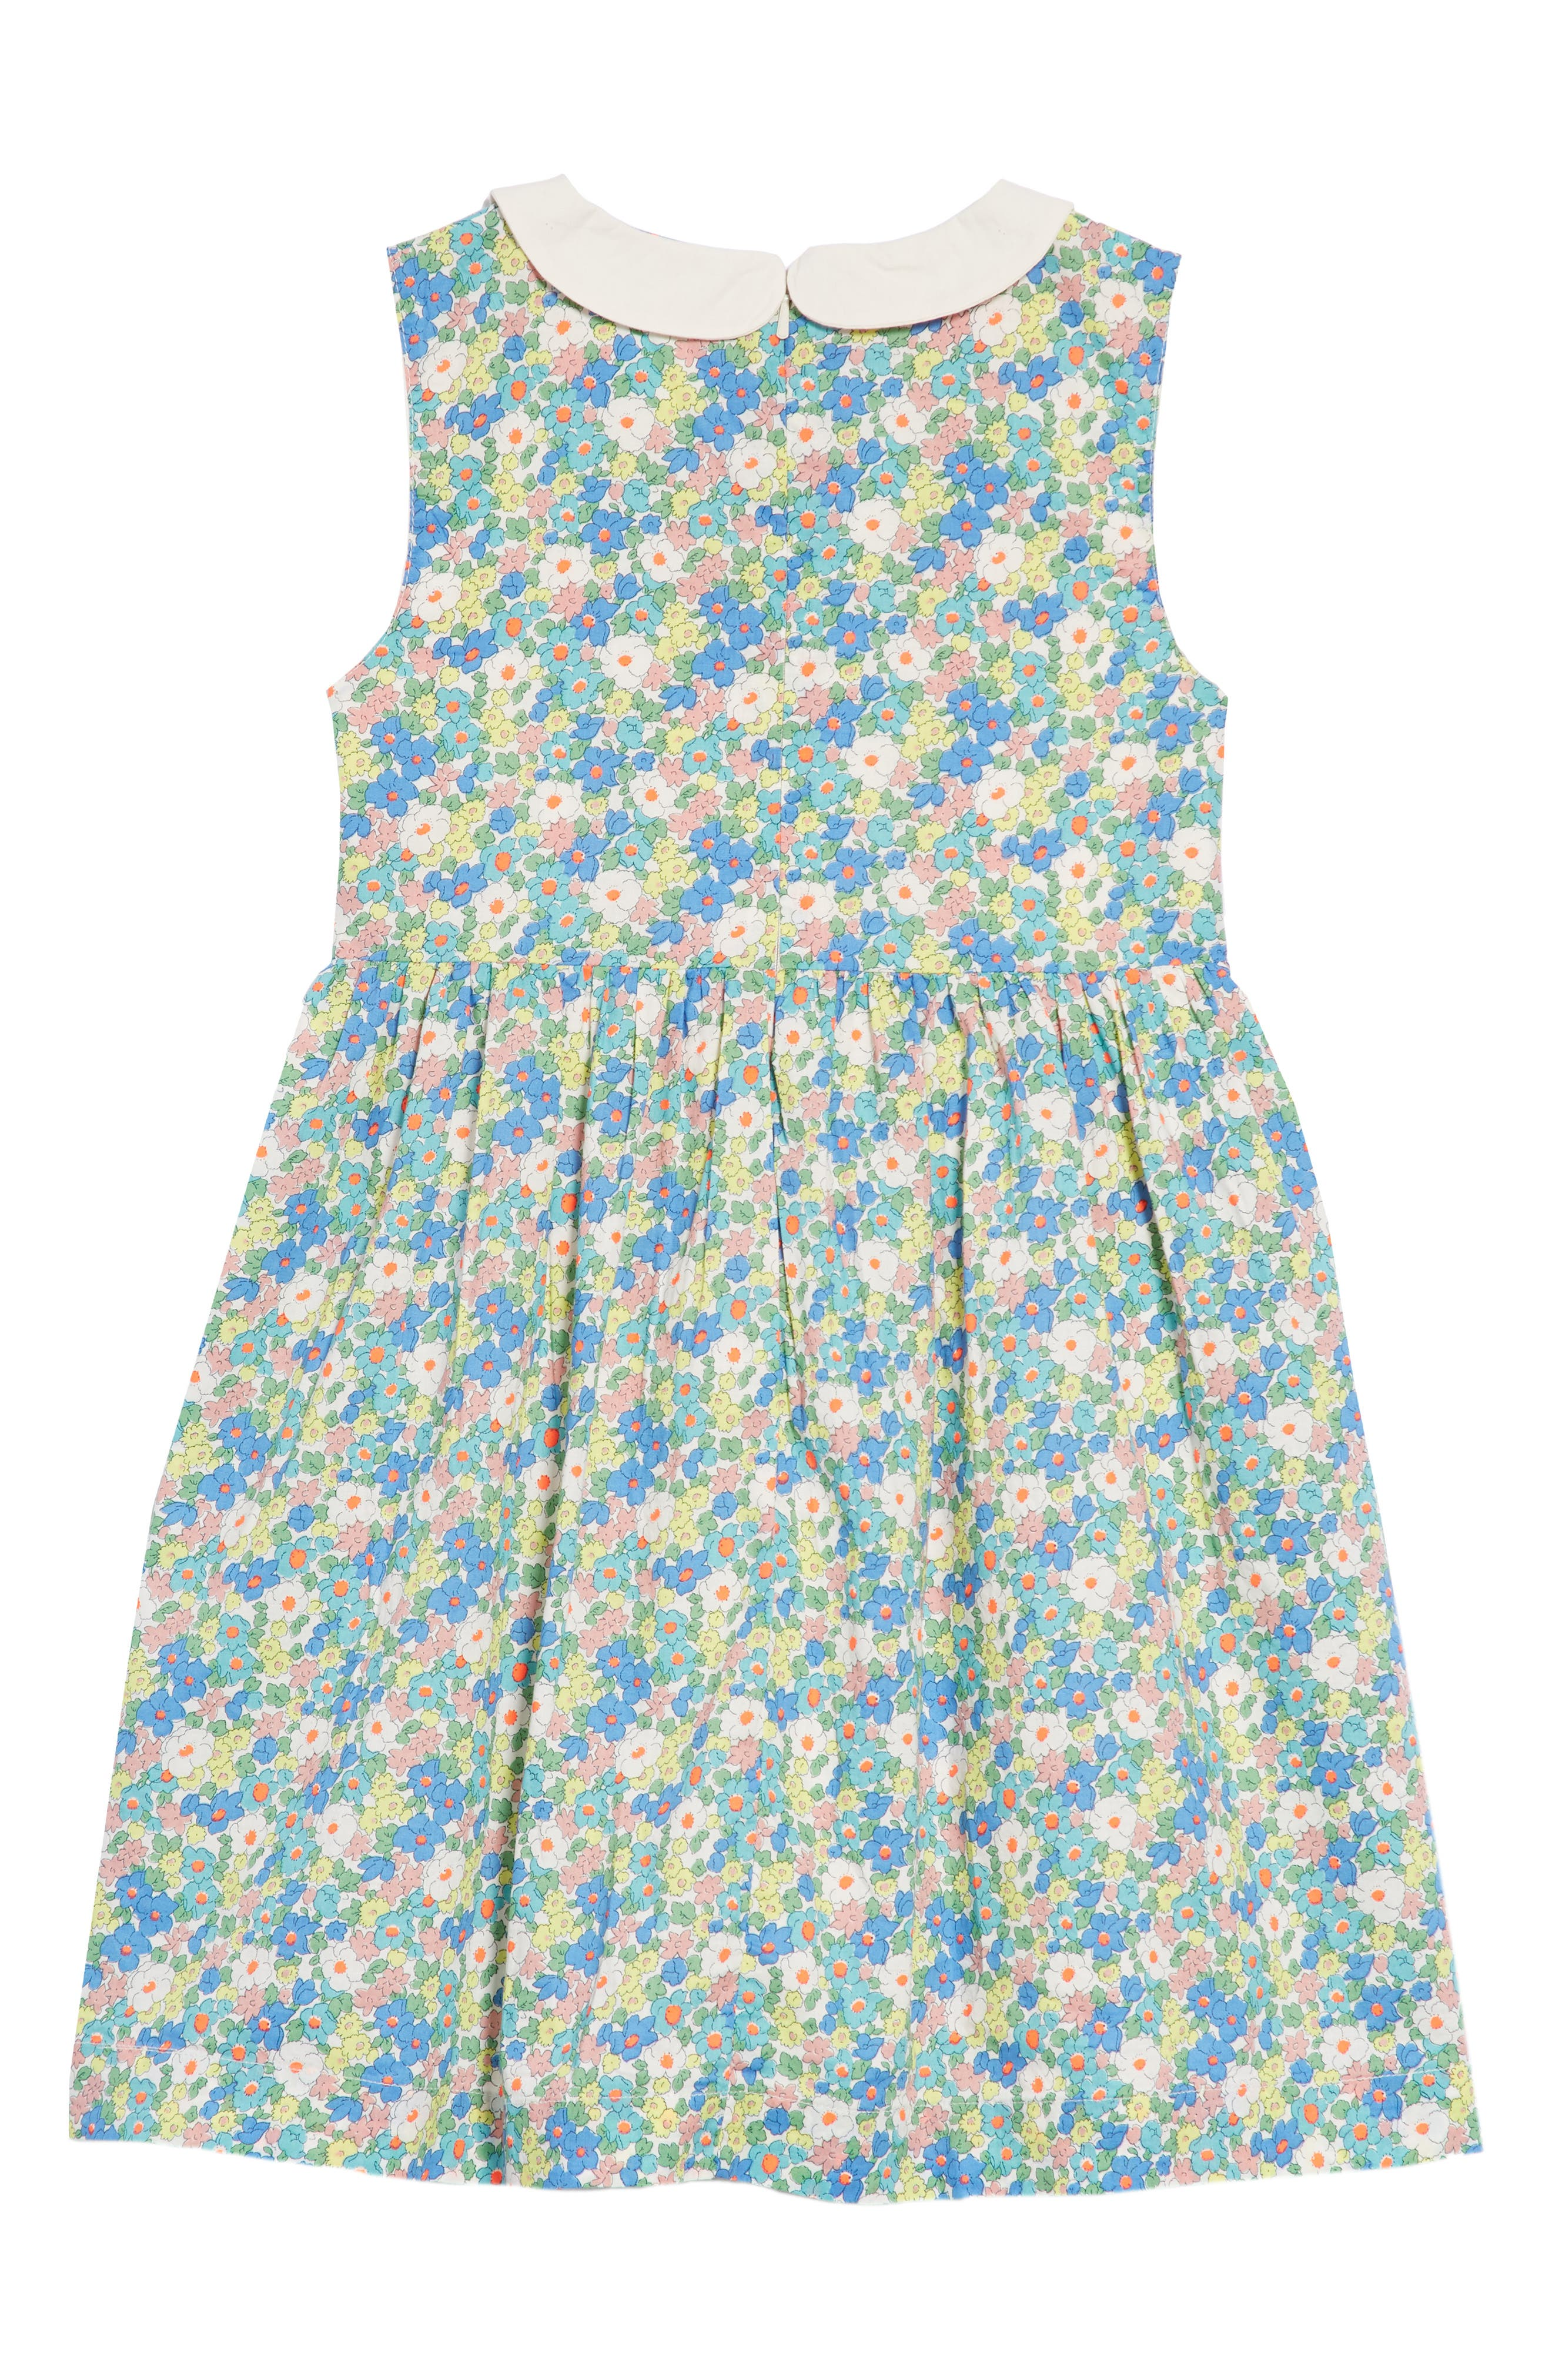 Nostalgic Smocked Dress,                             Alternate thumbnail 2, color,                             406